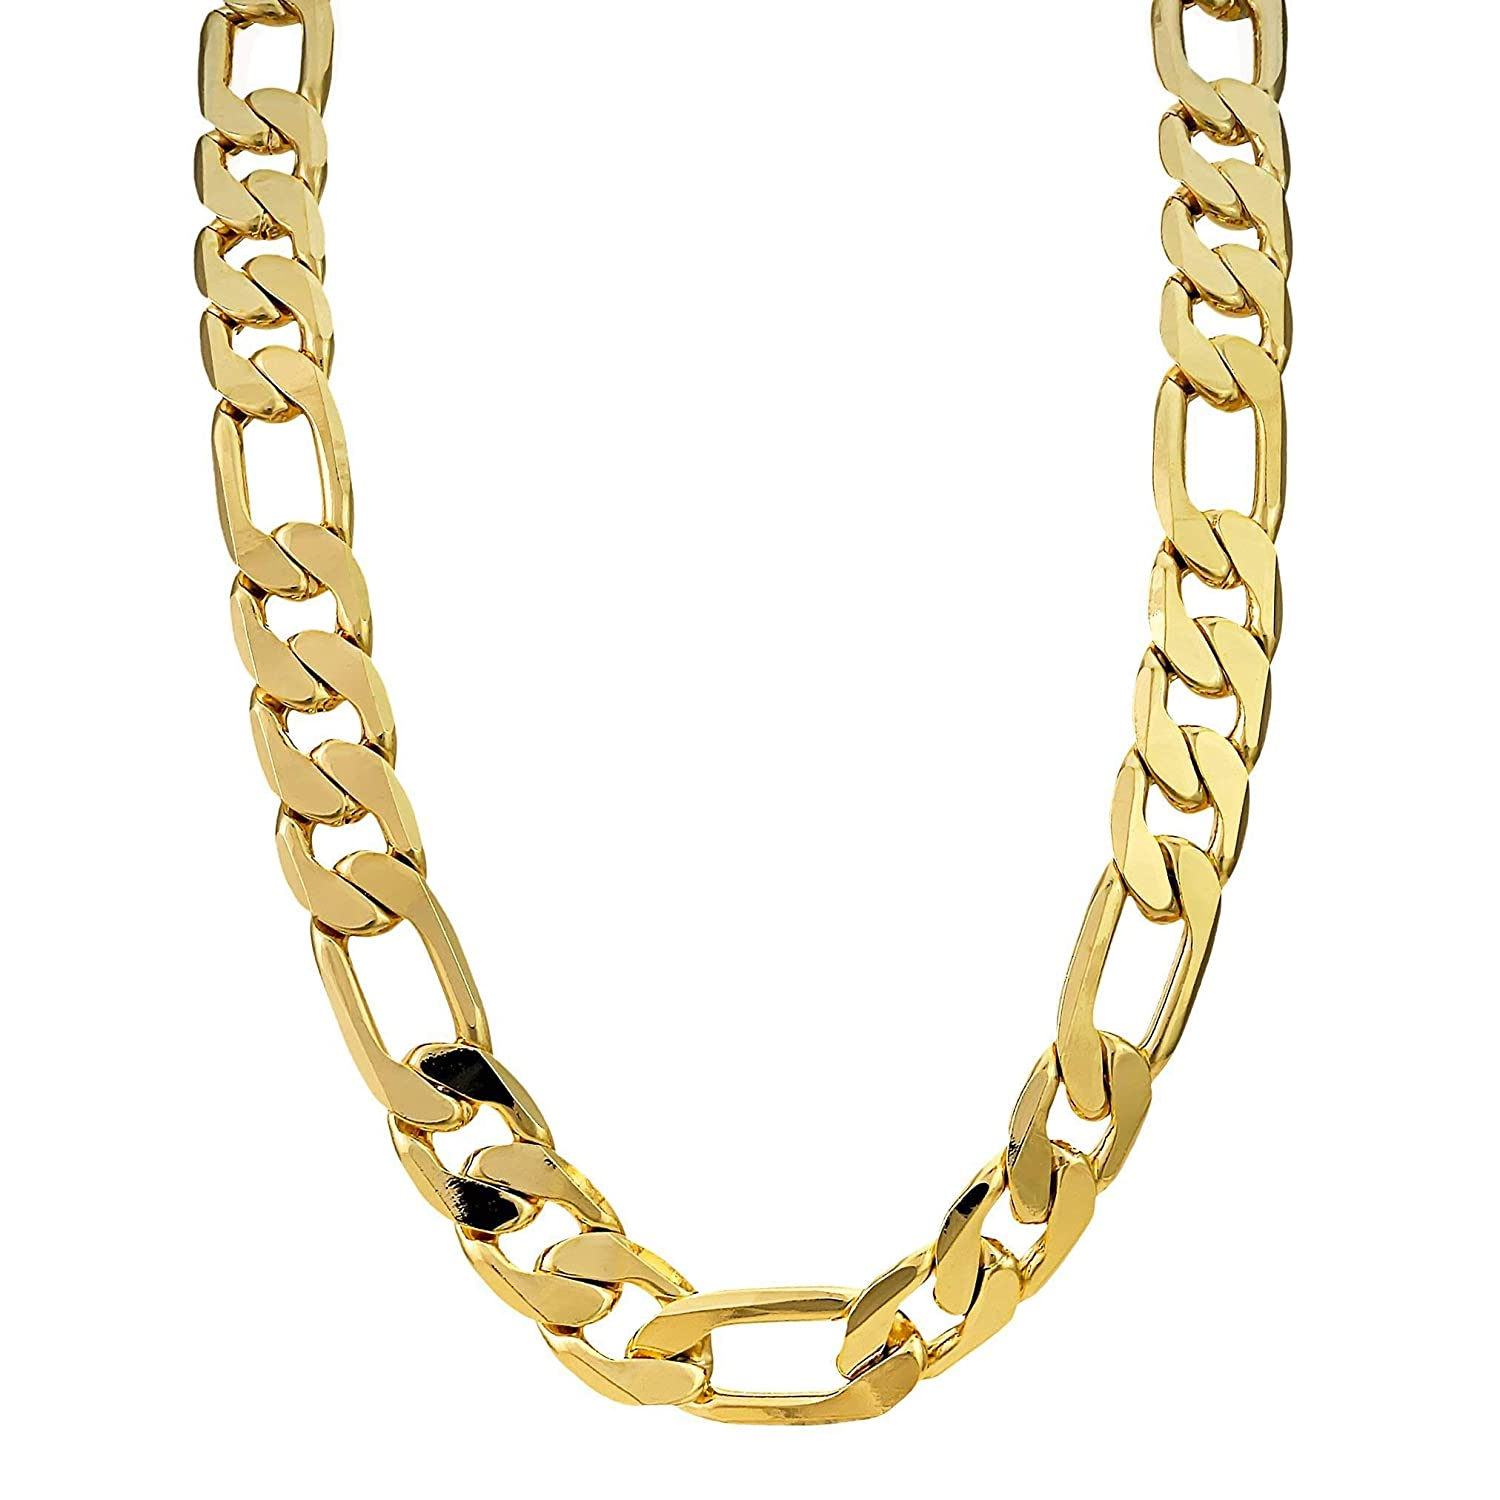 5ff8c14b769f1 THE BLING KING Mens 9ct Gold Filled Figaro Chain Big Heavy Chunky ...